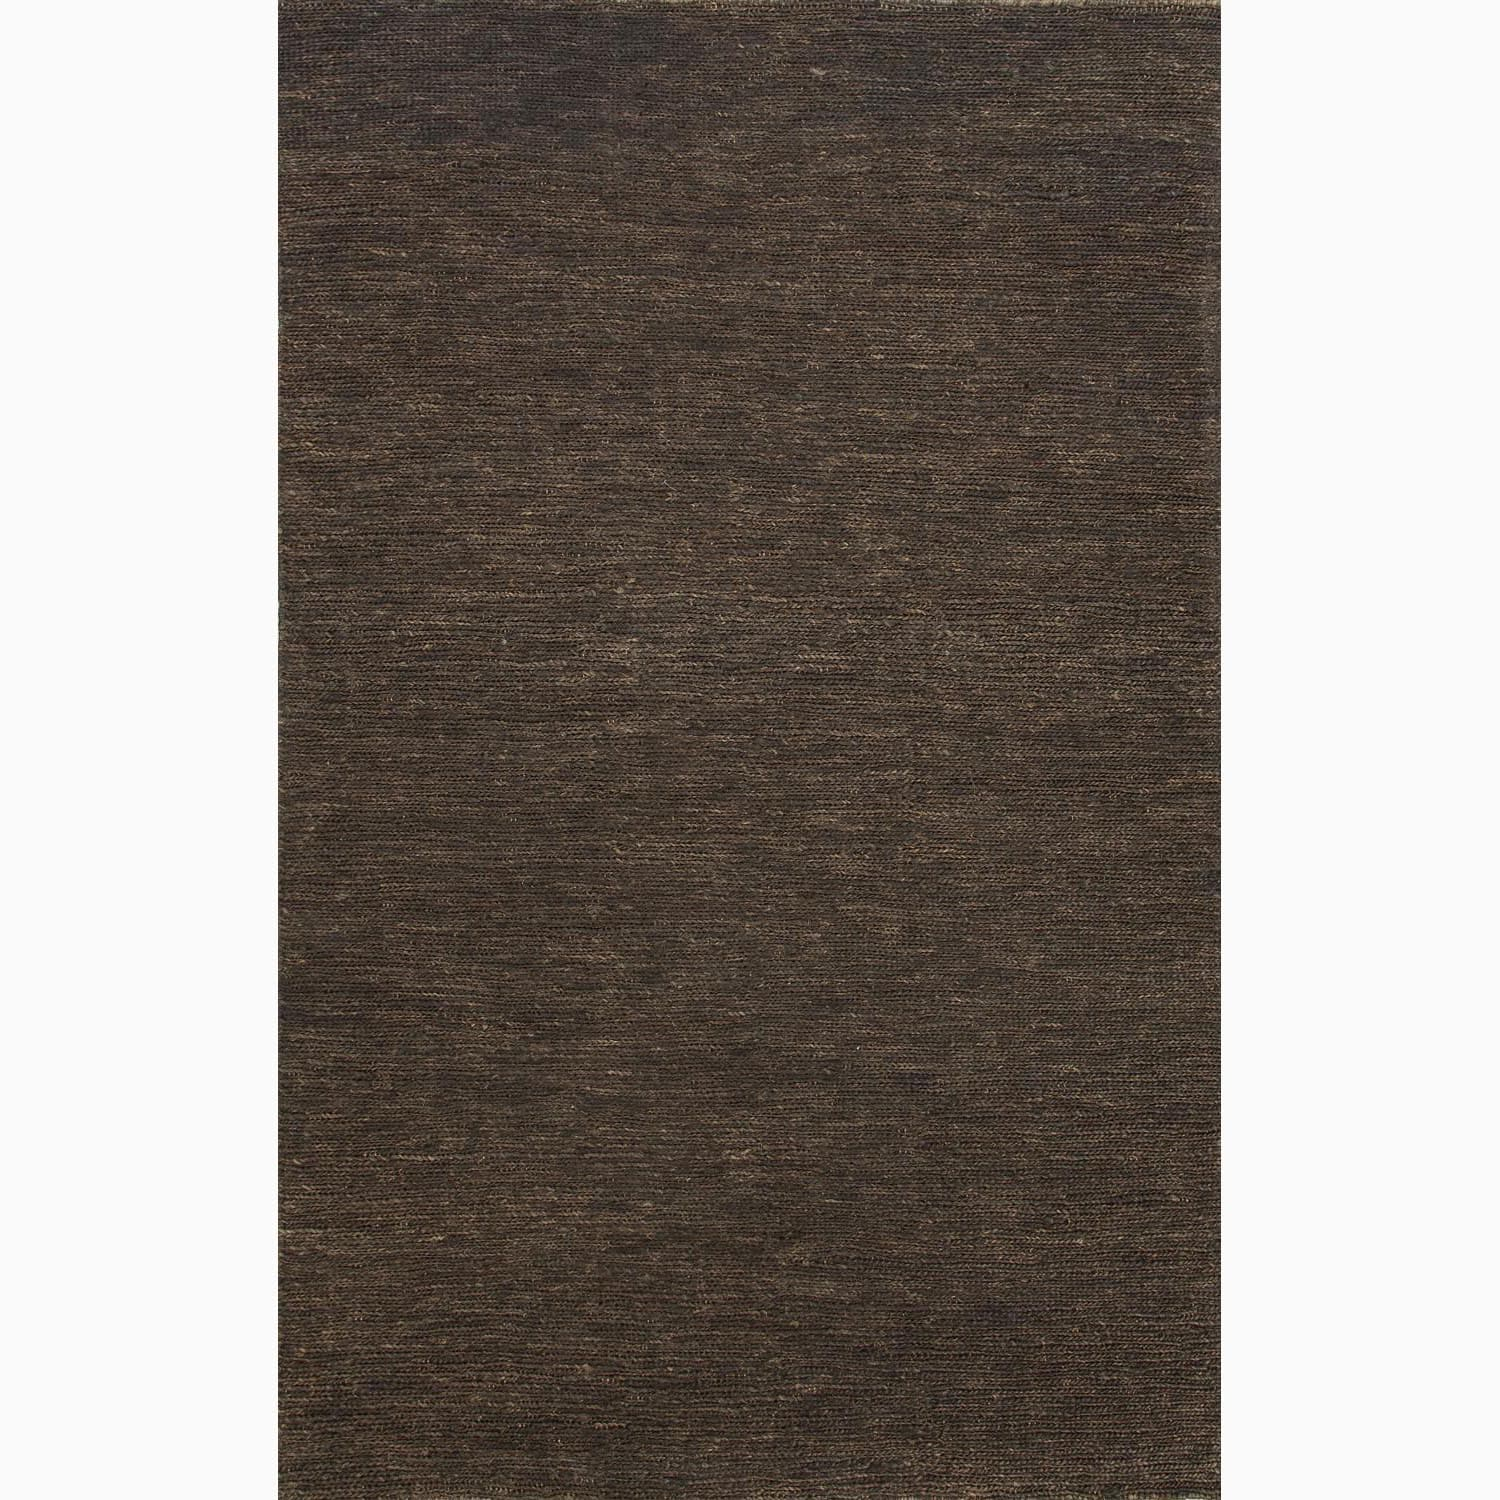 Handmade Solid Pattern Brown Hemp Rug (8 x 10)